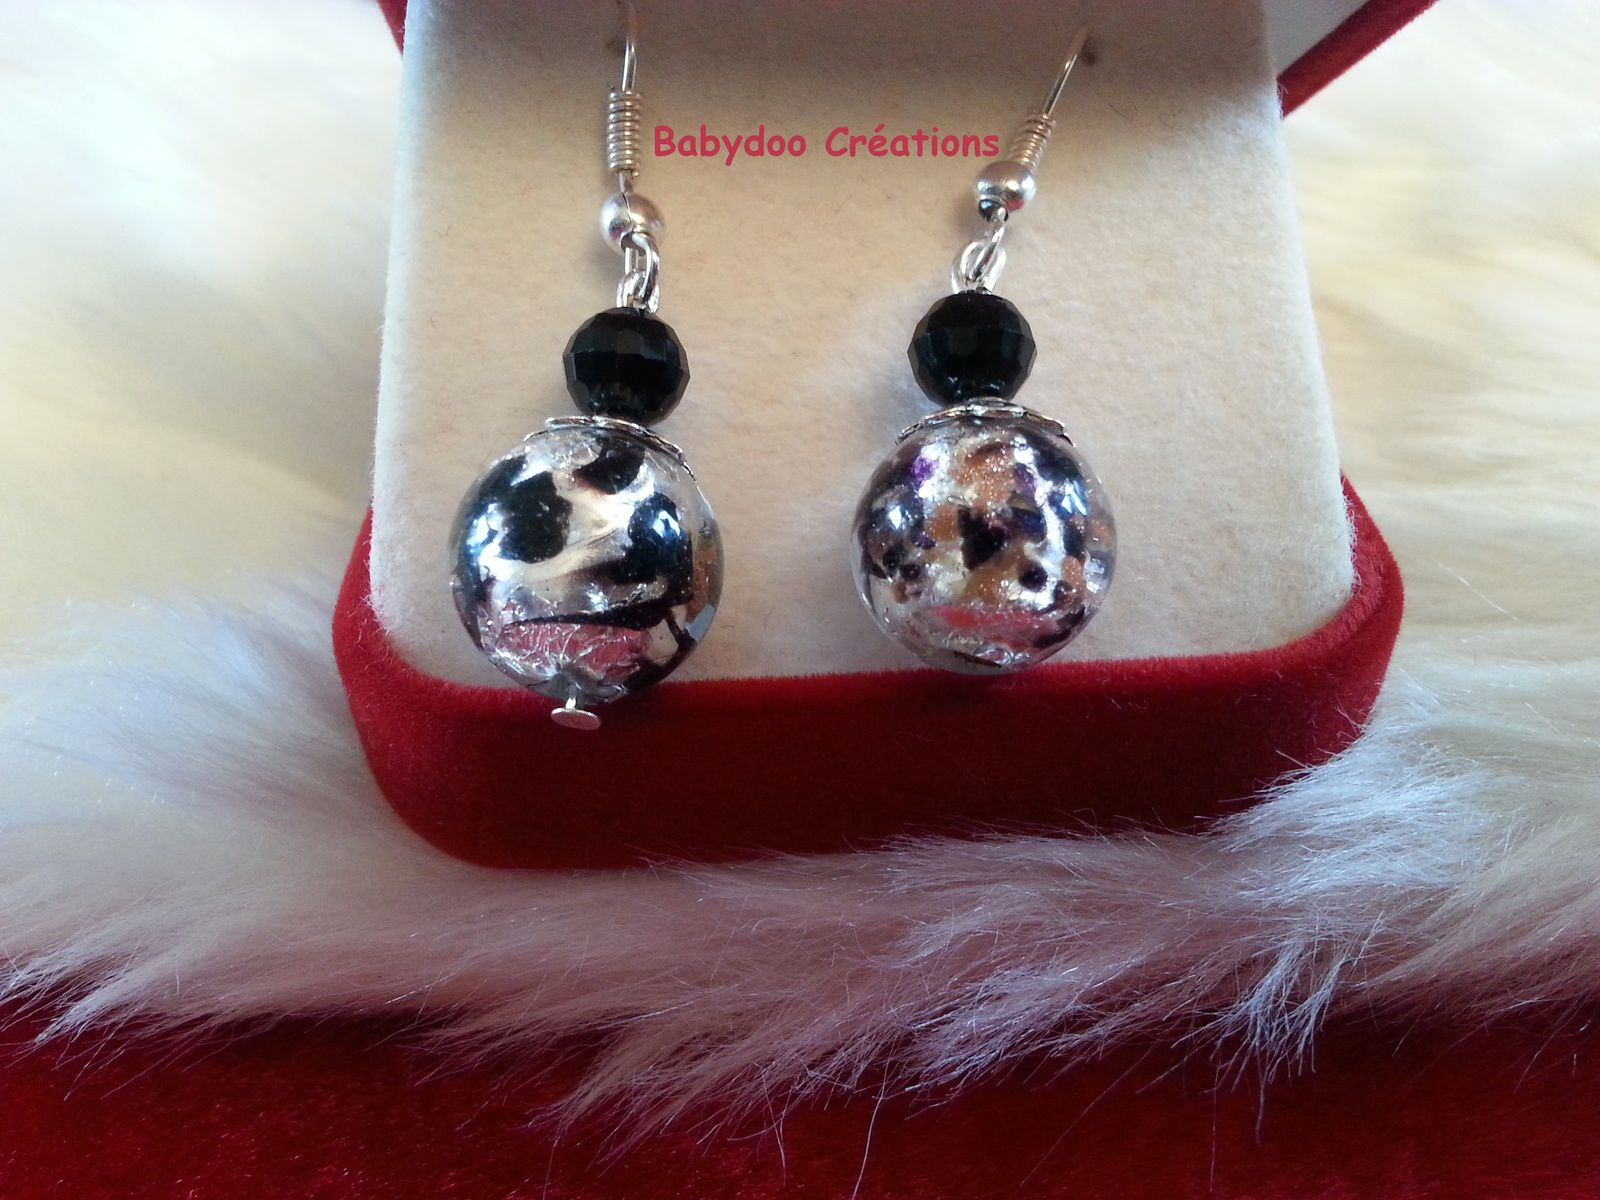 tuto boucles d 39 oreilles perles babydoo. Black Bedroom Furniture Sets. Home Design Ideas